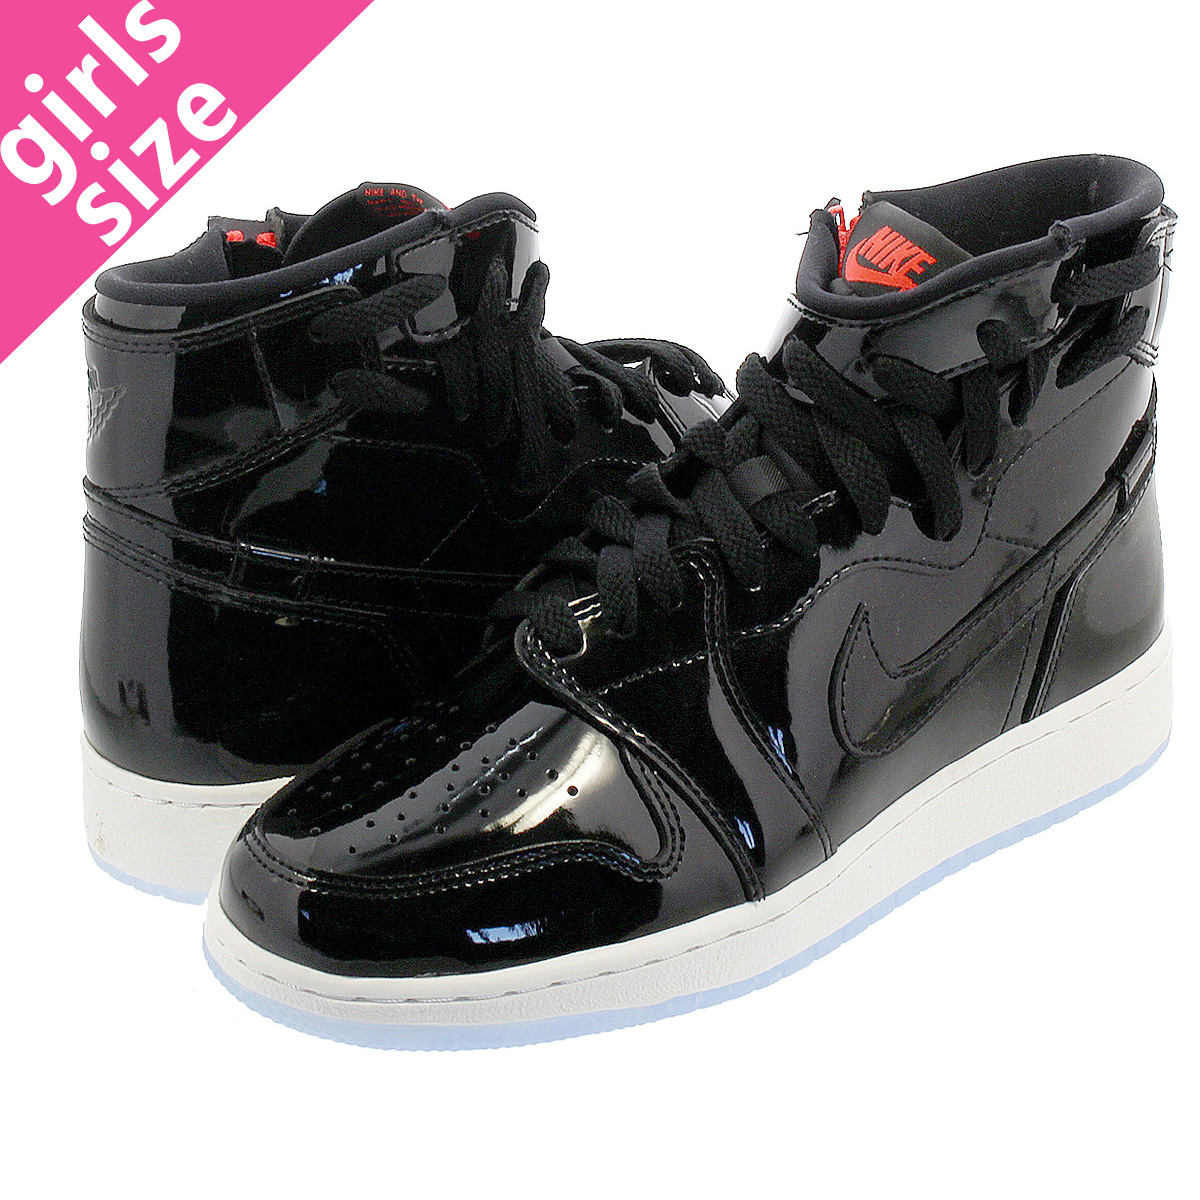 483016787fc4f8 NIKE WMNS AIR JORDAN 1 REBEL XX Nike women Air Jordan 1 level XX  BLACK BLACK INFRARED 23 WHITE ar5599-001